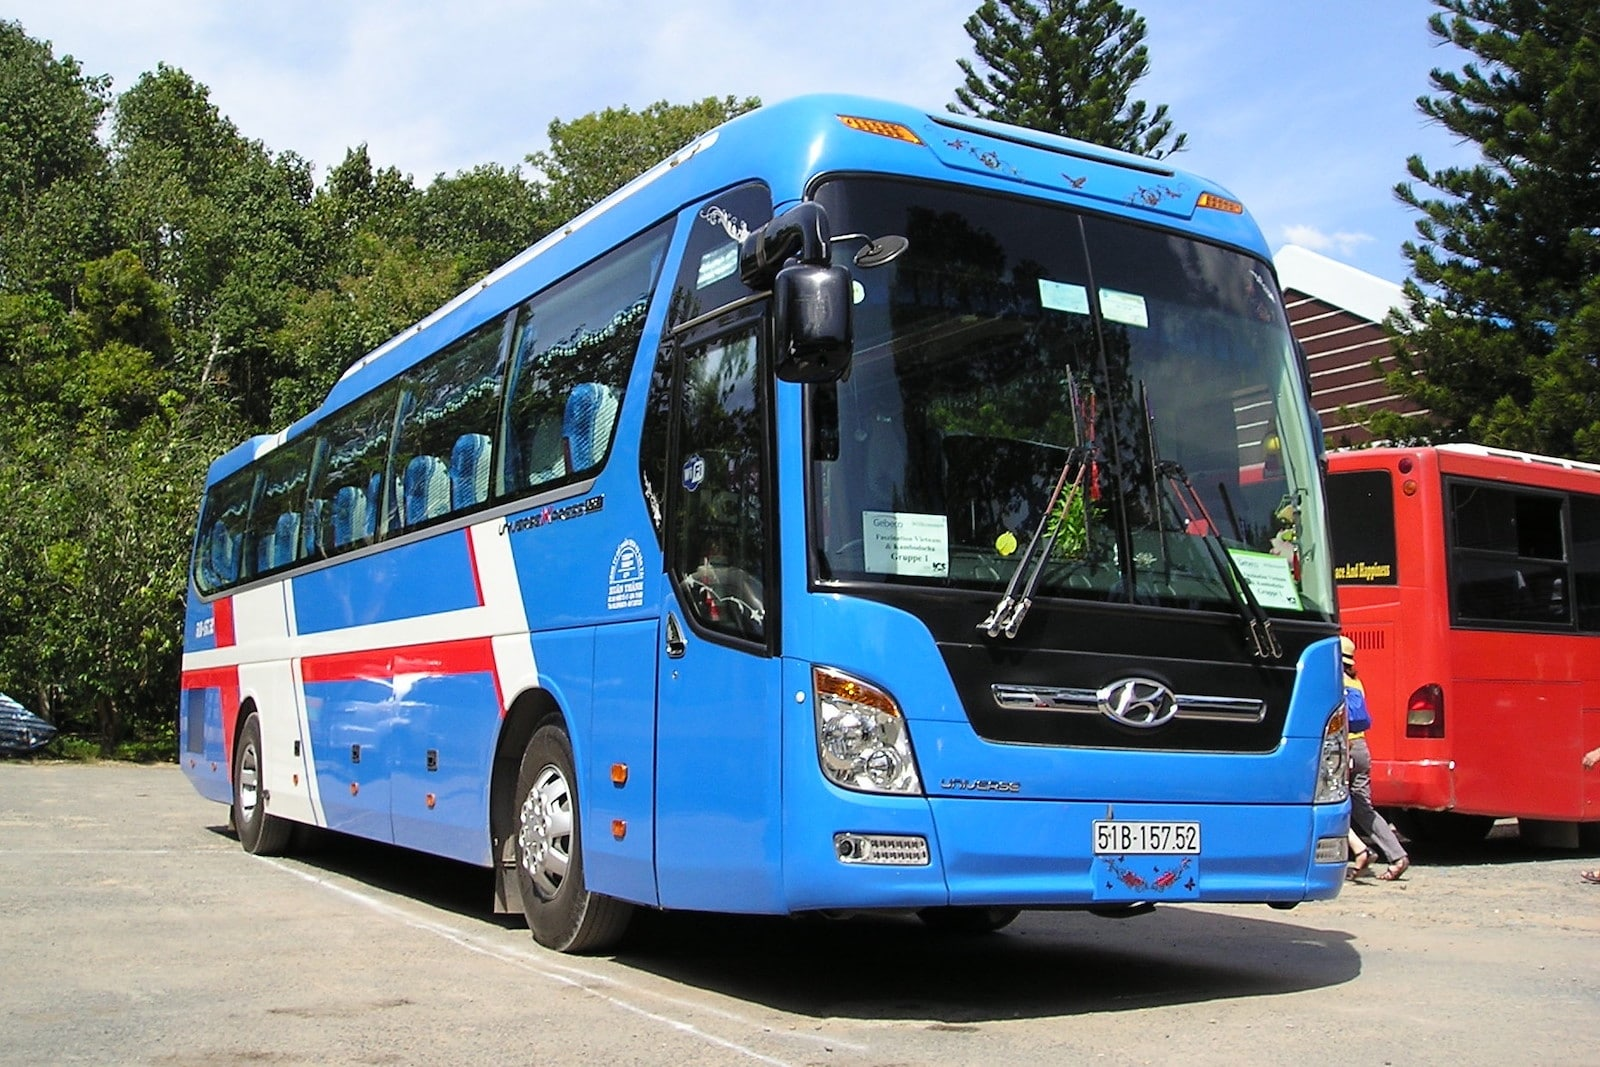 Image of a bus going to the Cu Chi Tunnels in Vietnam